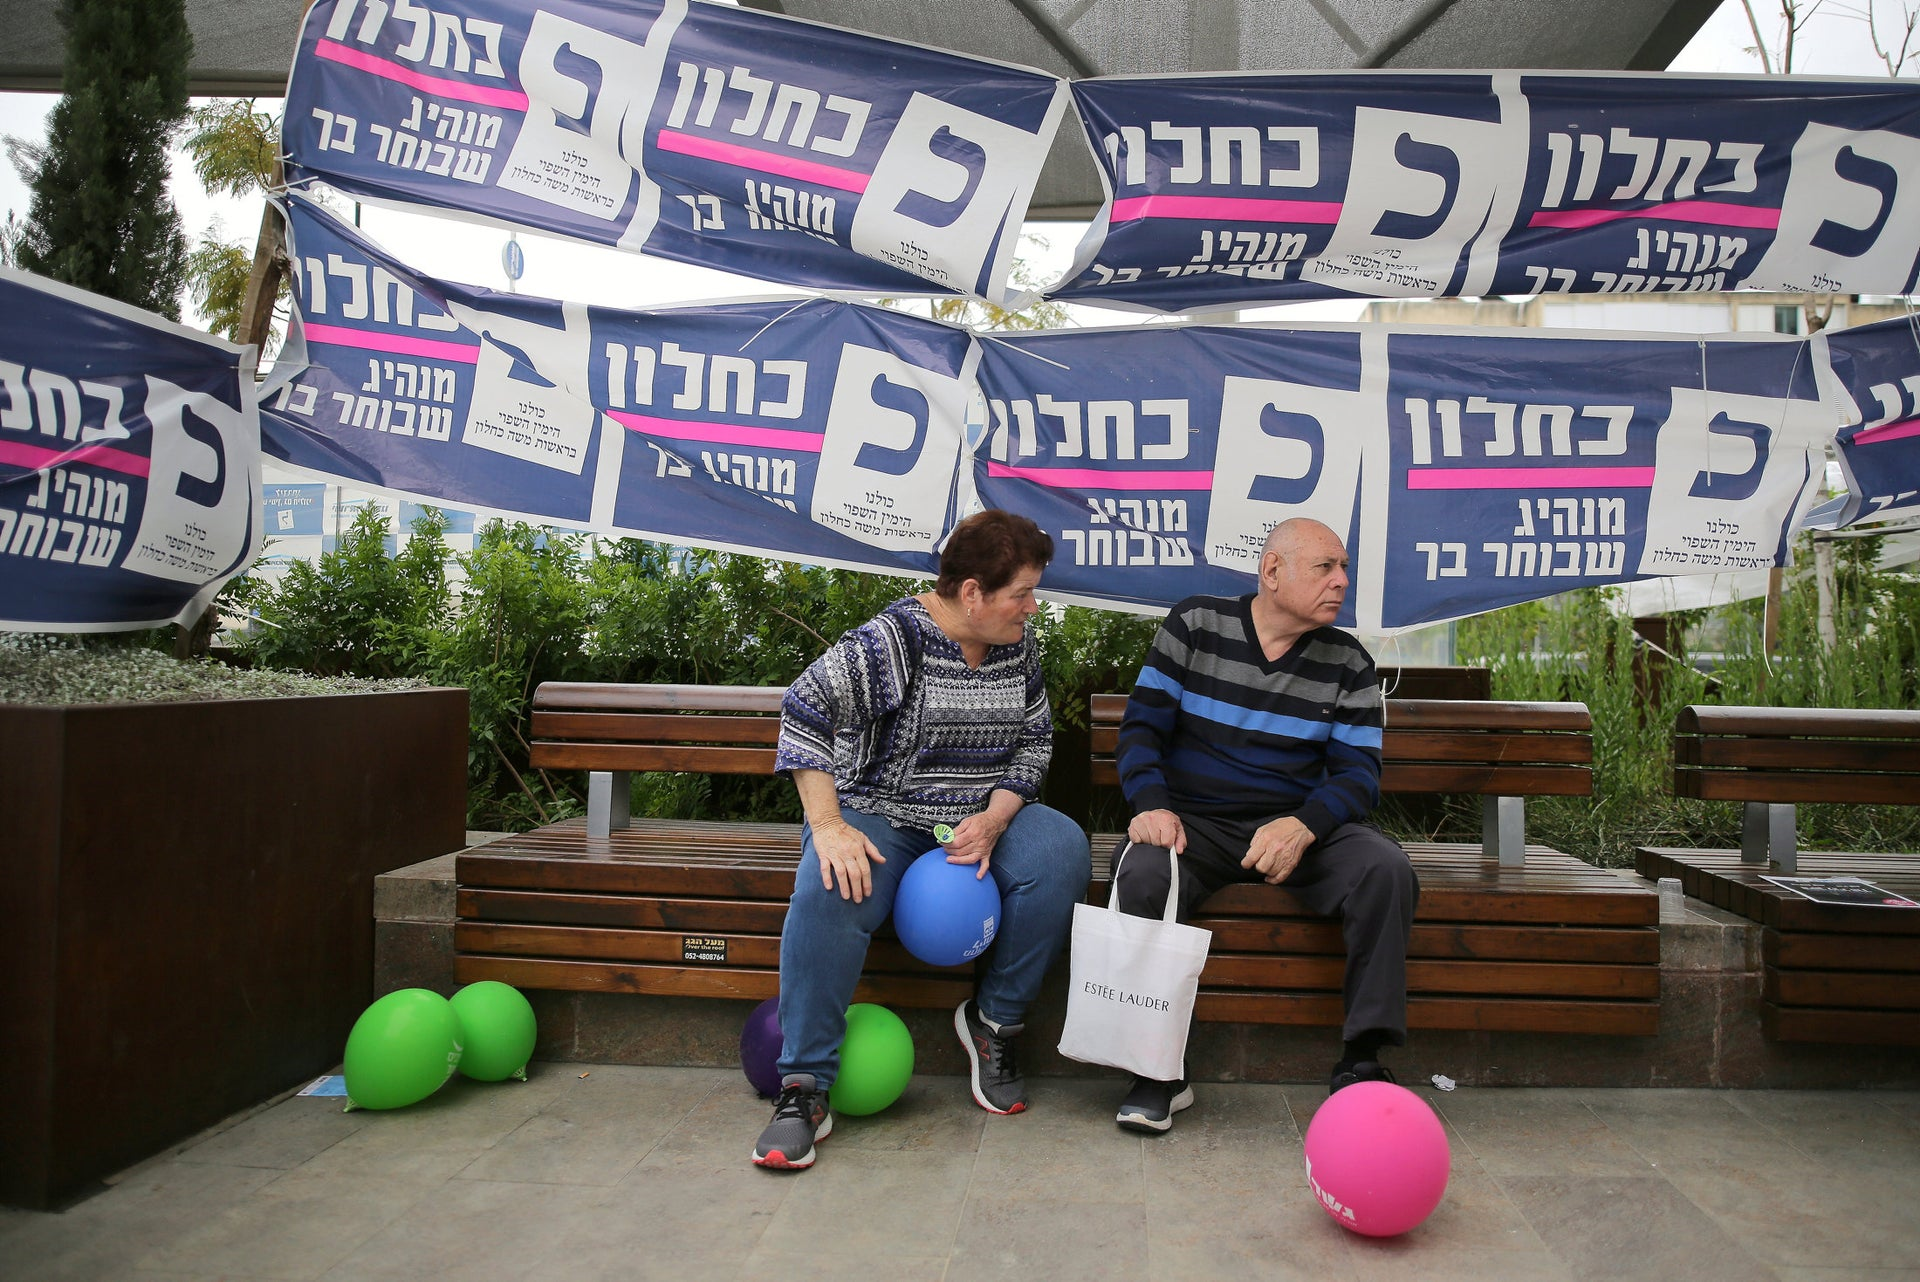 Shoppers resting at a mall in Rehovot with ads for Moshe Kahlon's Kulanu party behind them, April 4, 2019.